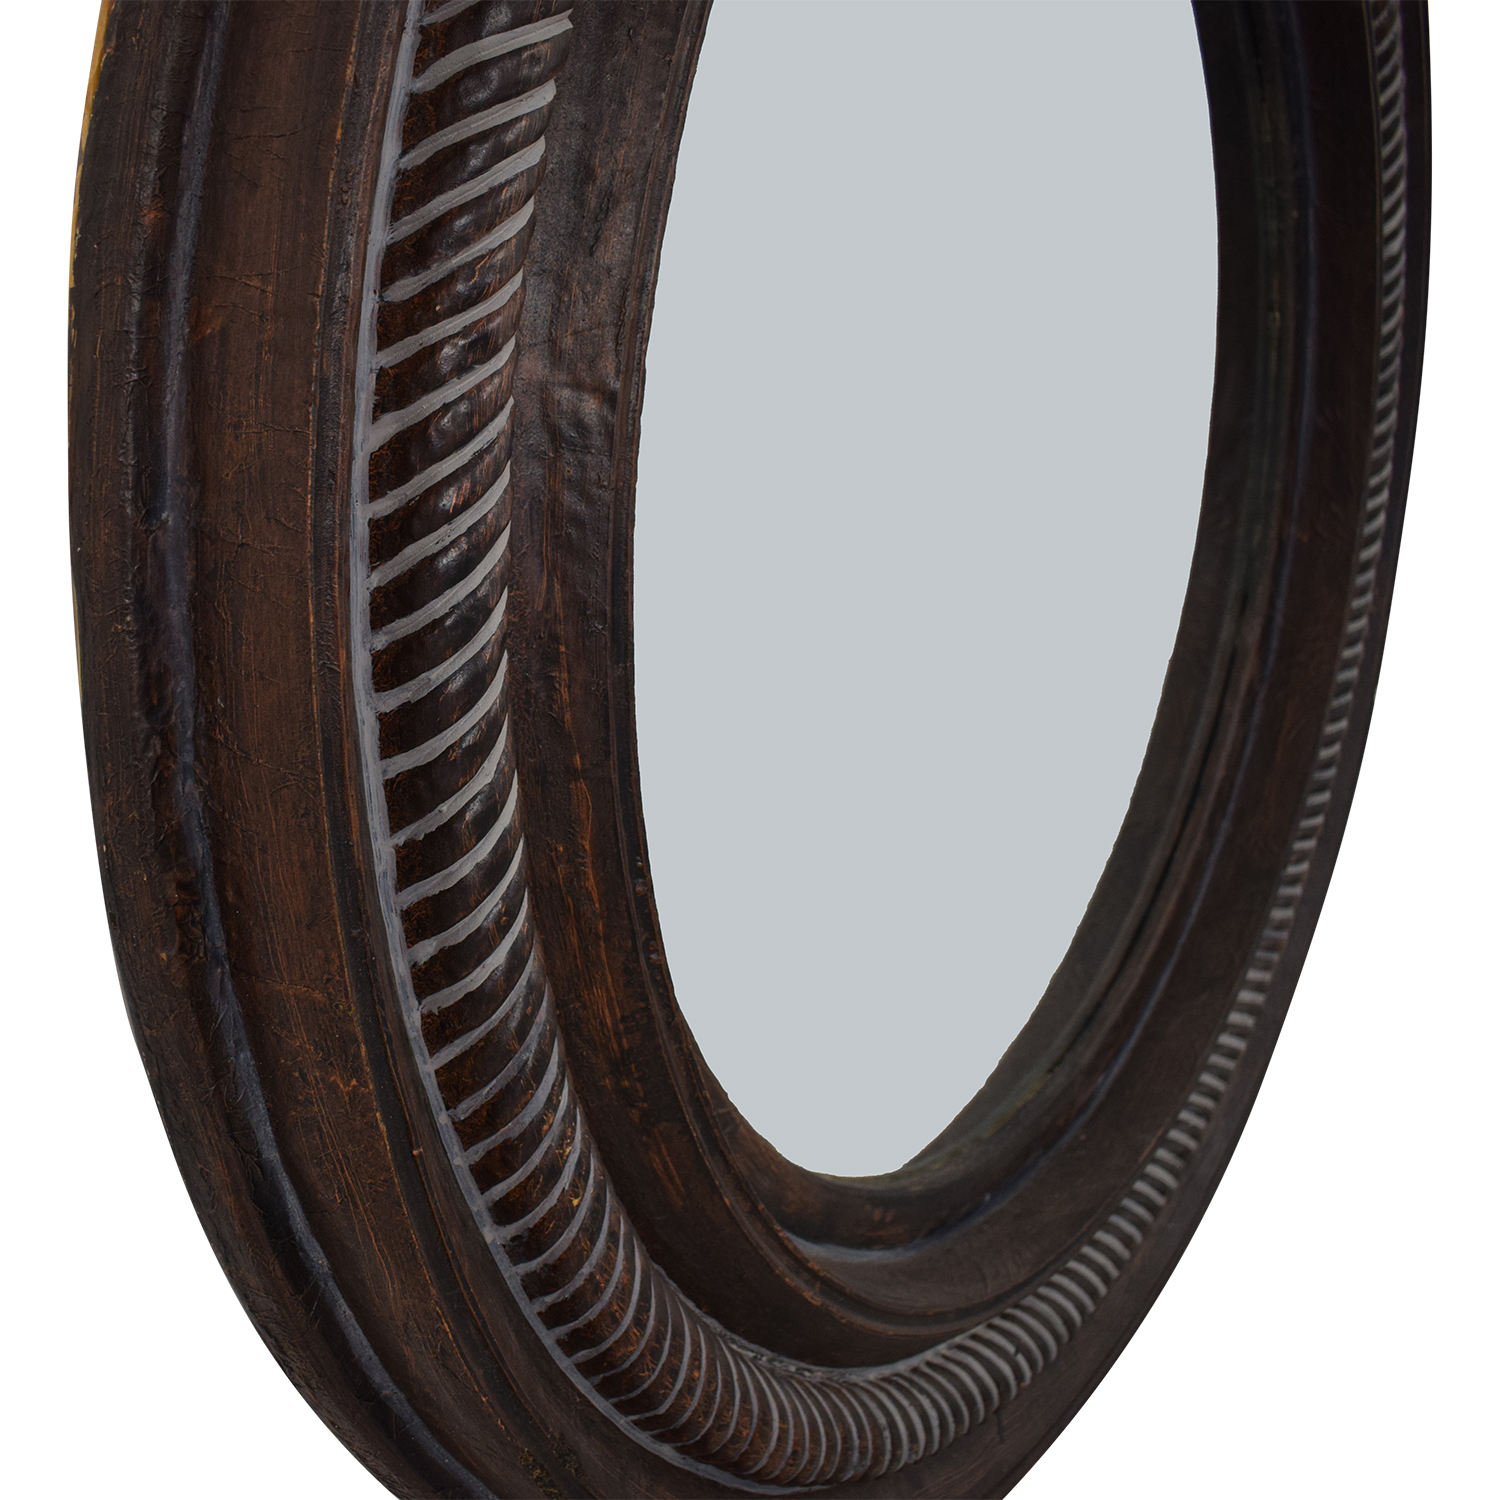 Circular Framed Round Mirror price